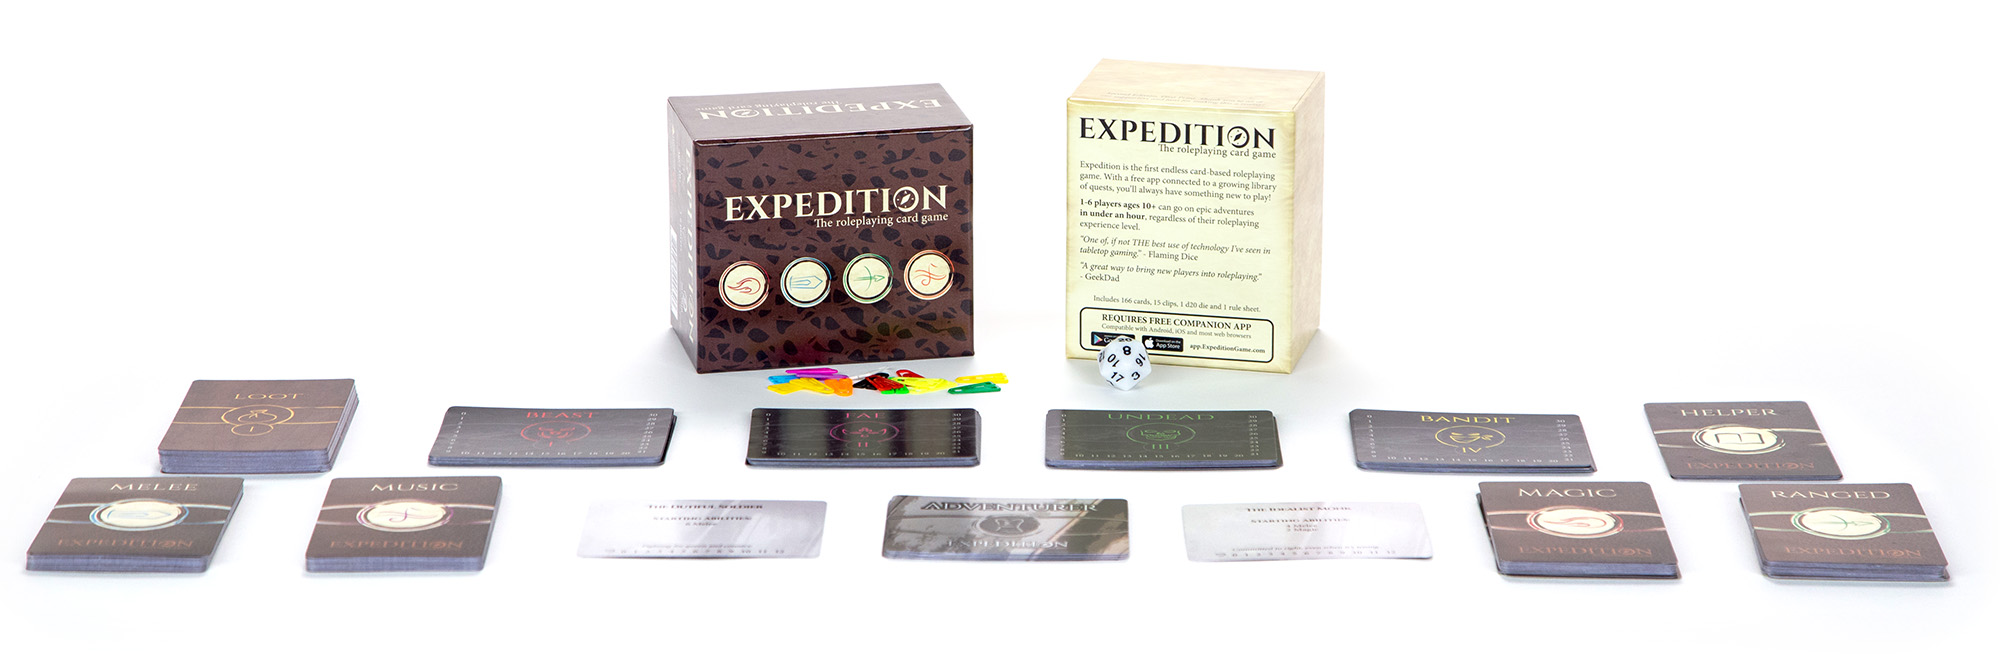 expedition-roleplaying-game-cards.jpg